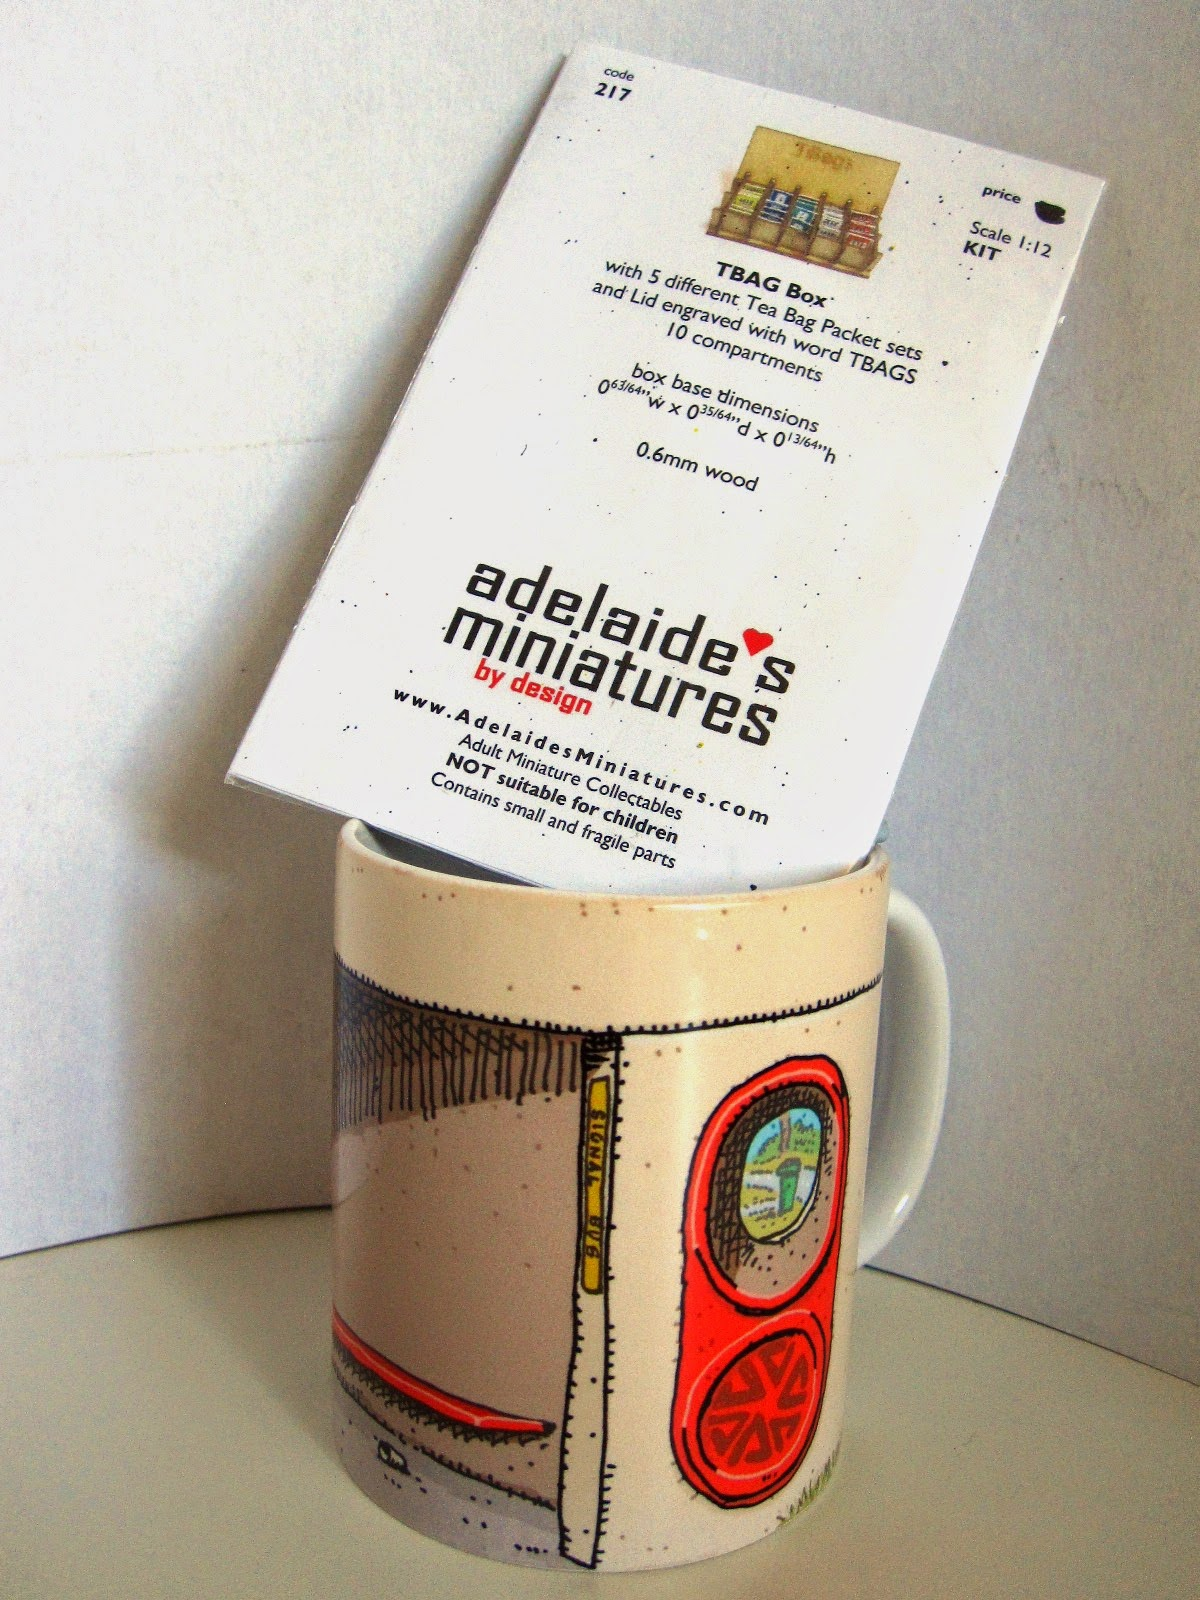 Trevor Dickinson Canberra bus shelter mug with miniature tea bag box kit sticking out of it.